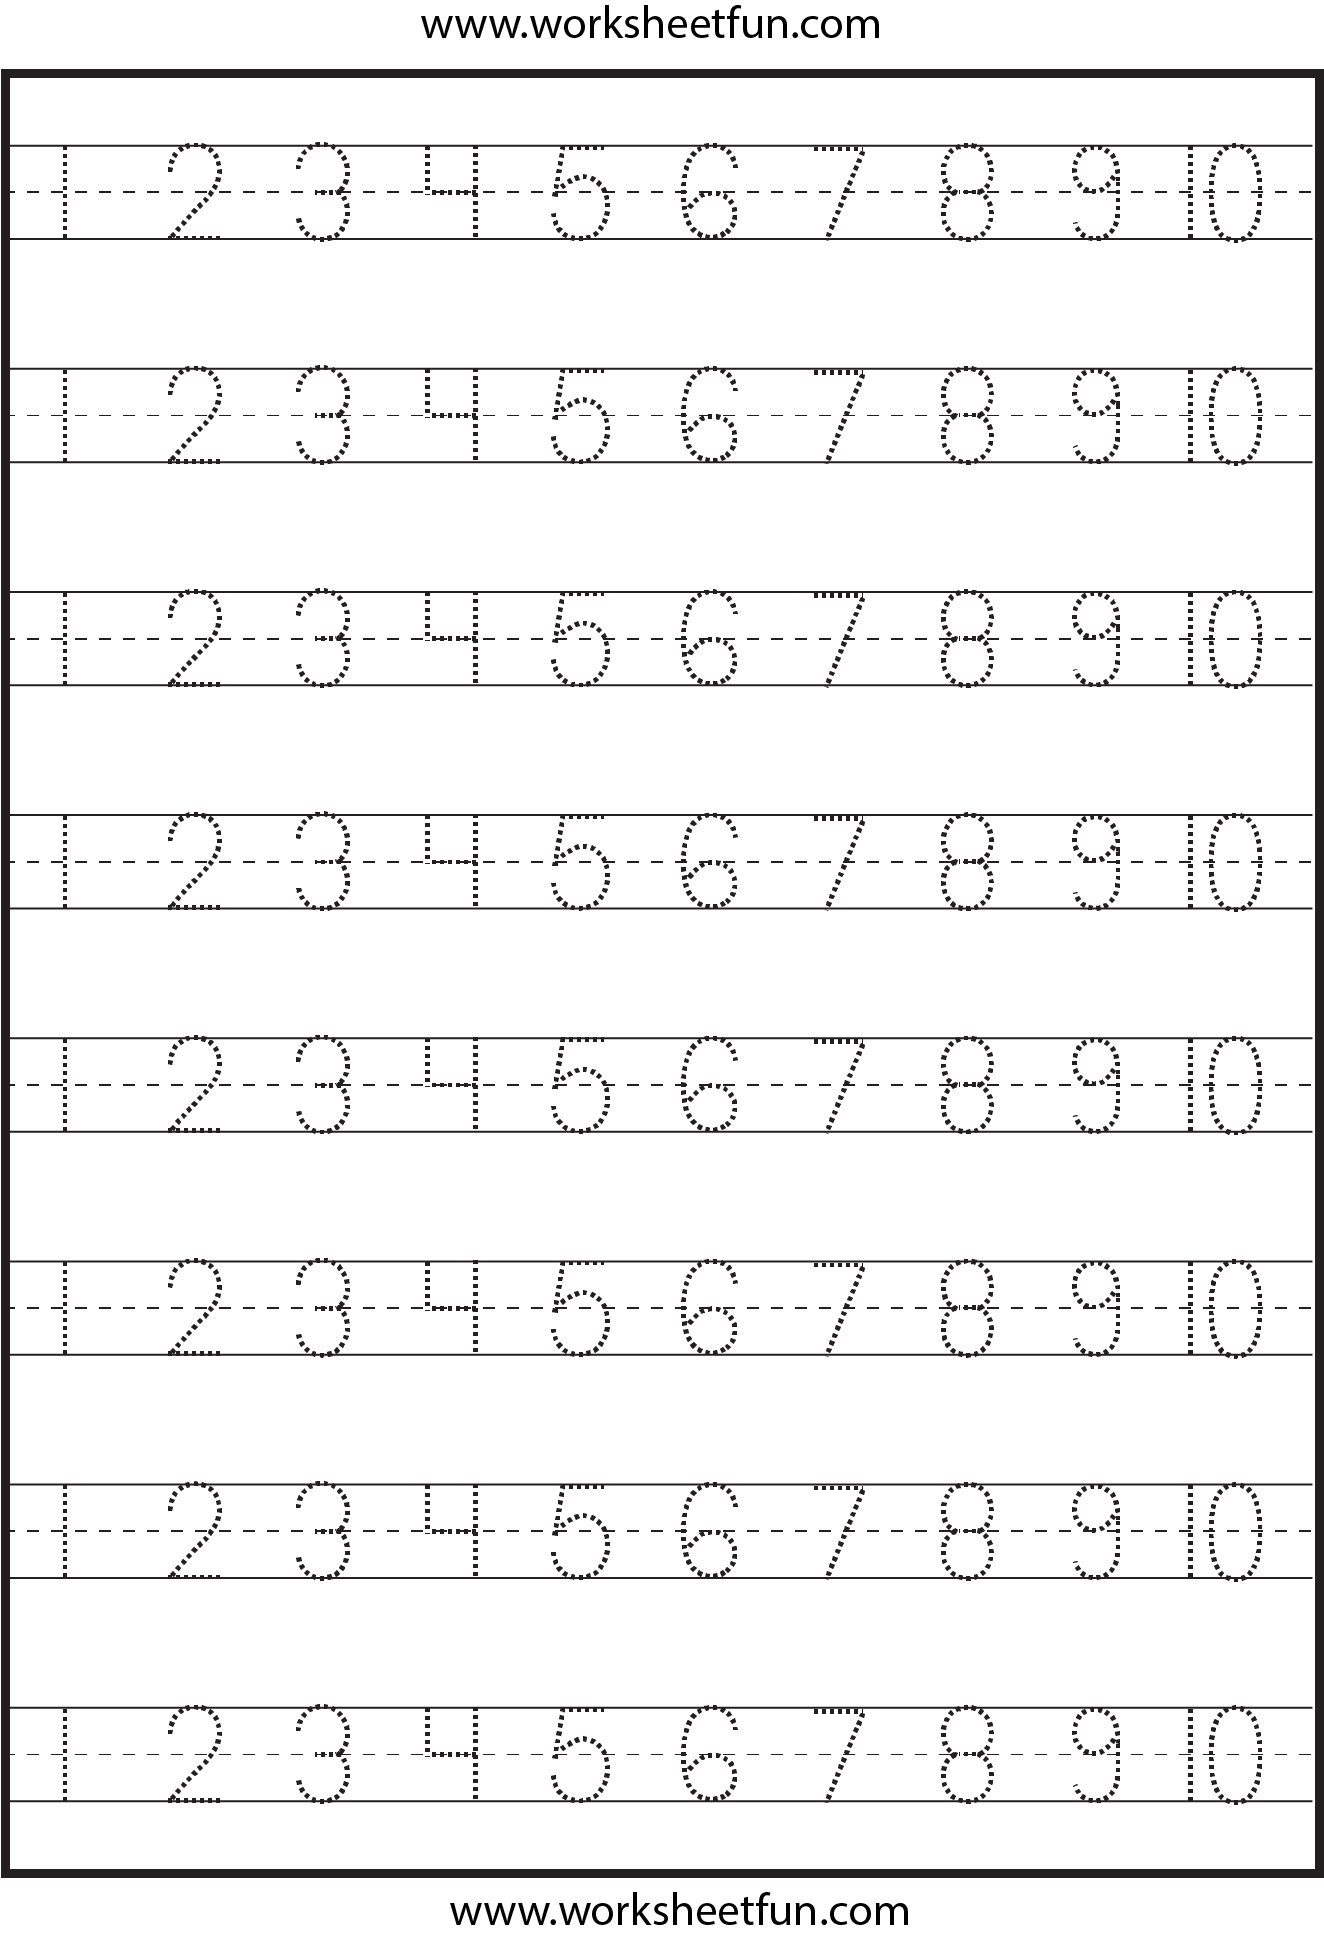 Printables Number Tracing Worksheets number tracing 1 10 worksheet free printable worksheets tracing